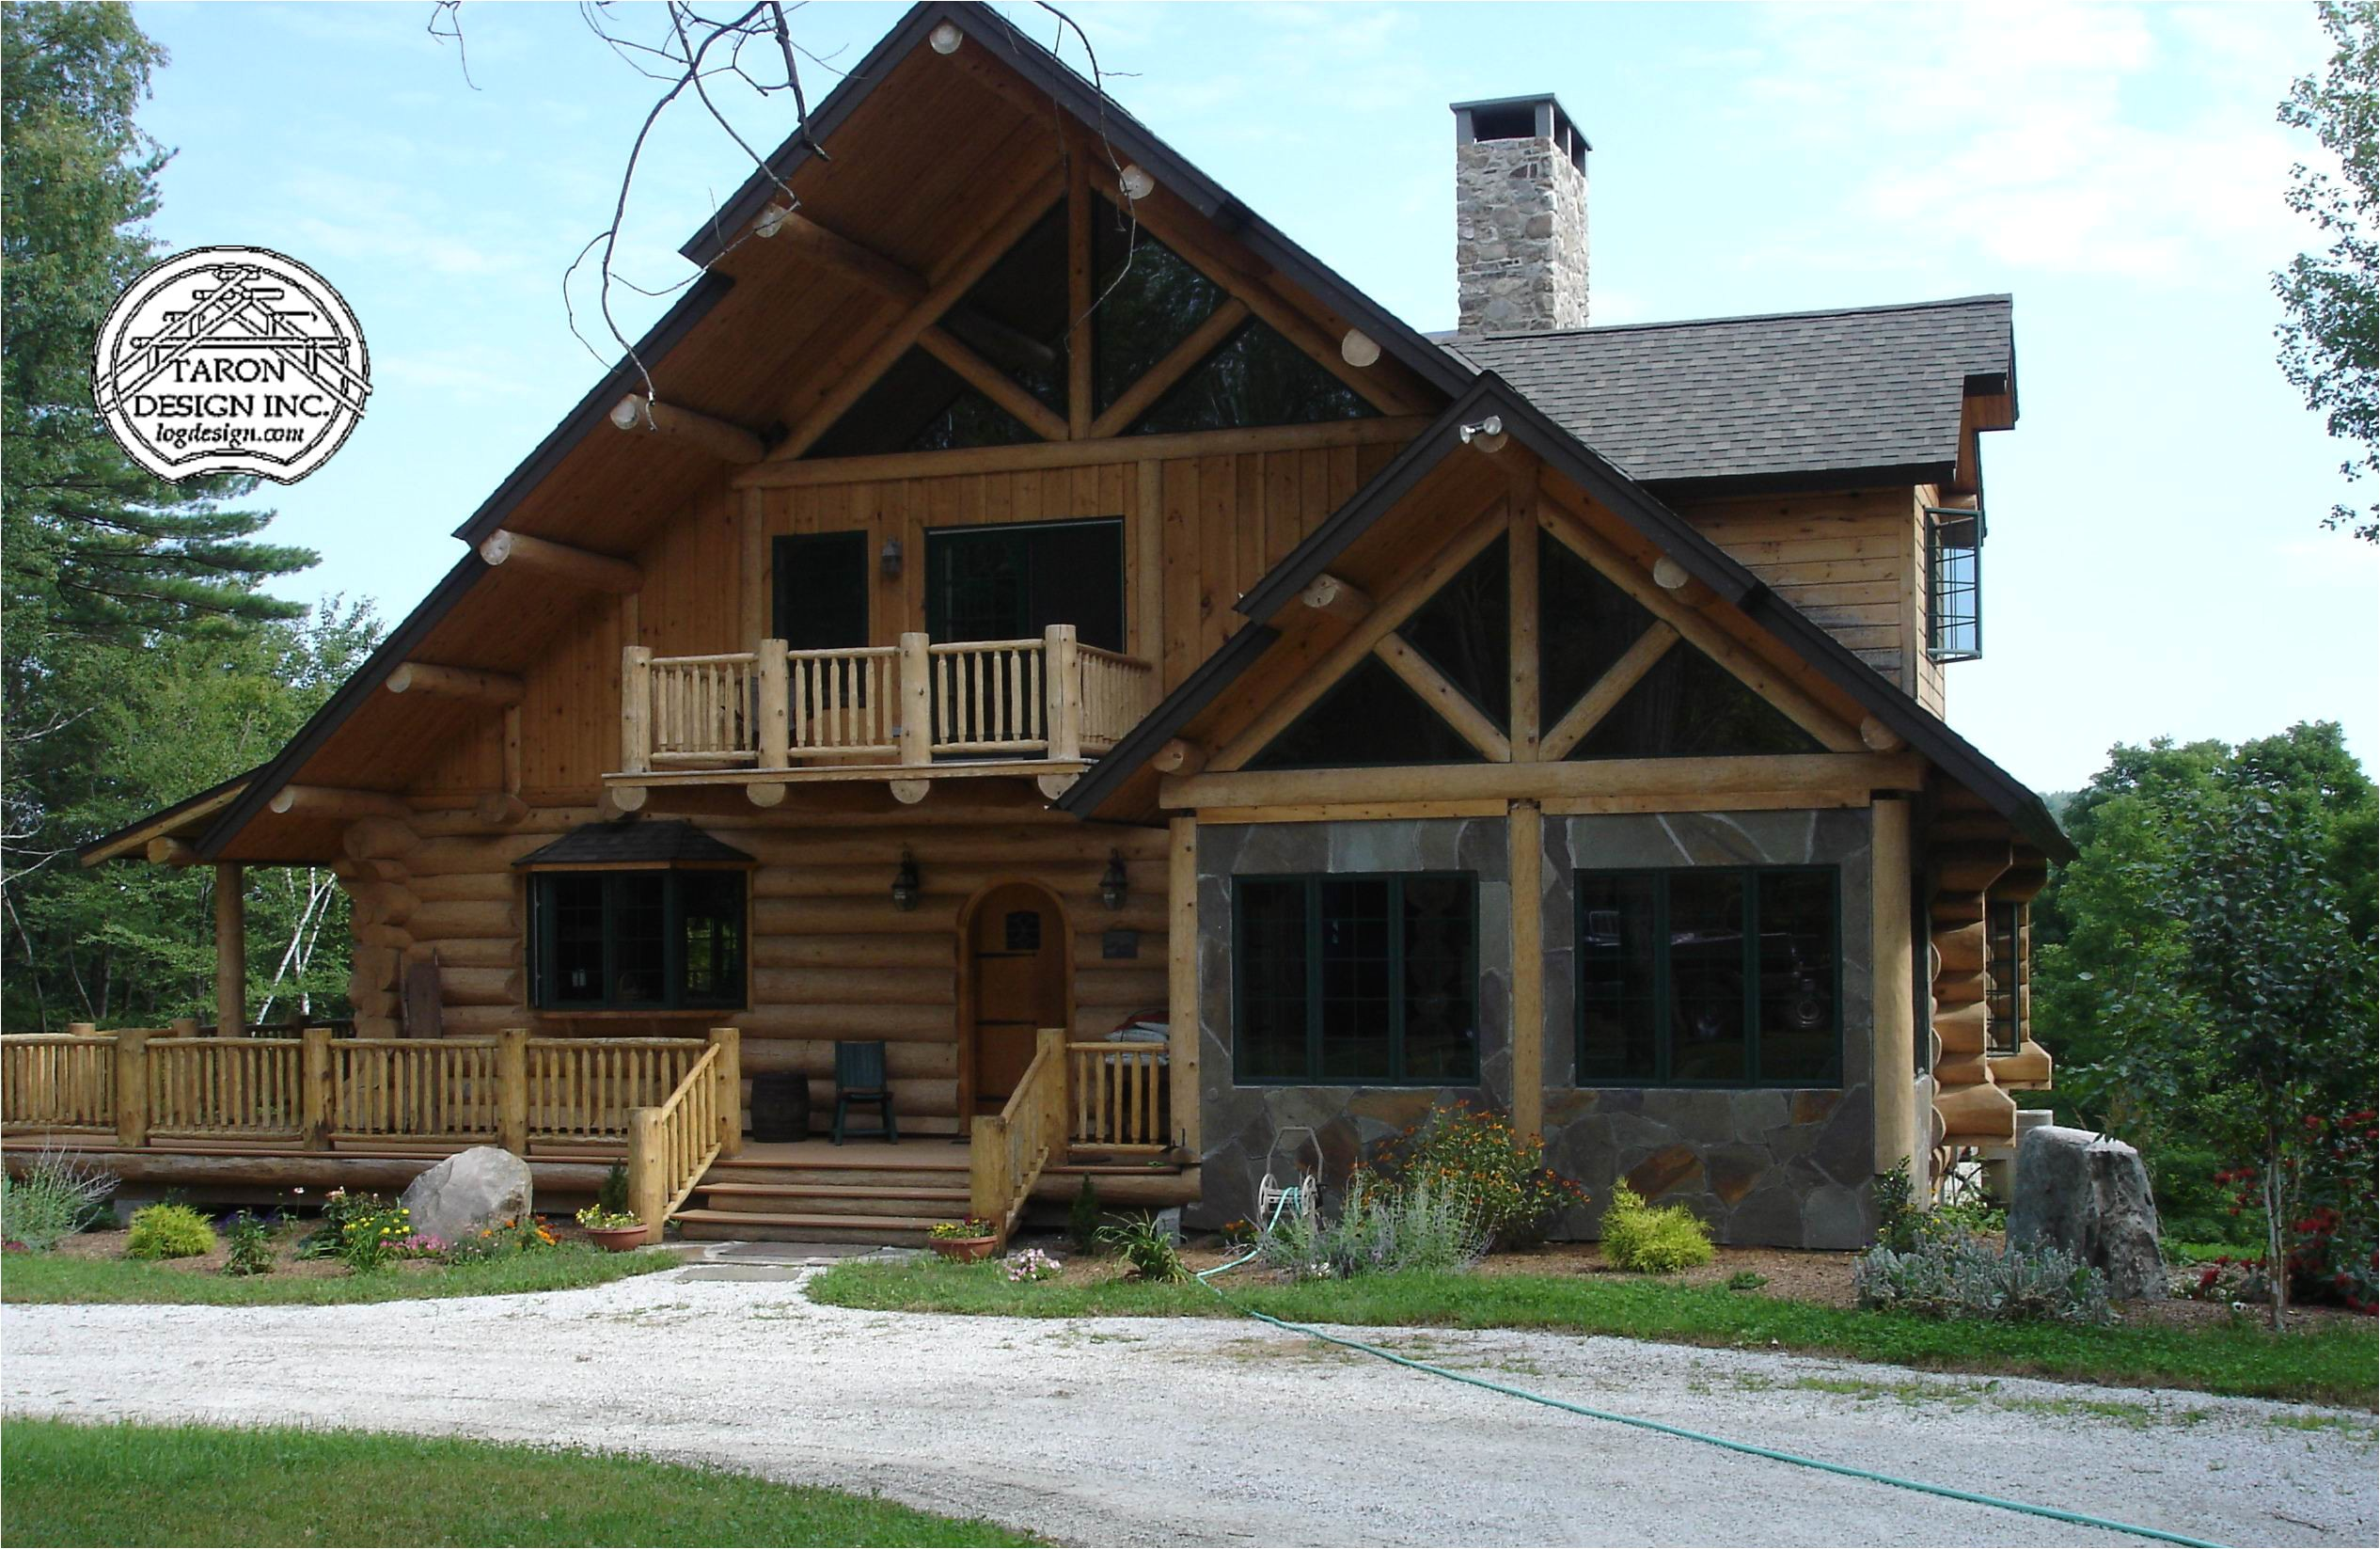 2500 Sq Ft Log Home Plans 400 Sf Oak Log Cabin Kit is Perfect Tiny House Homes